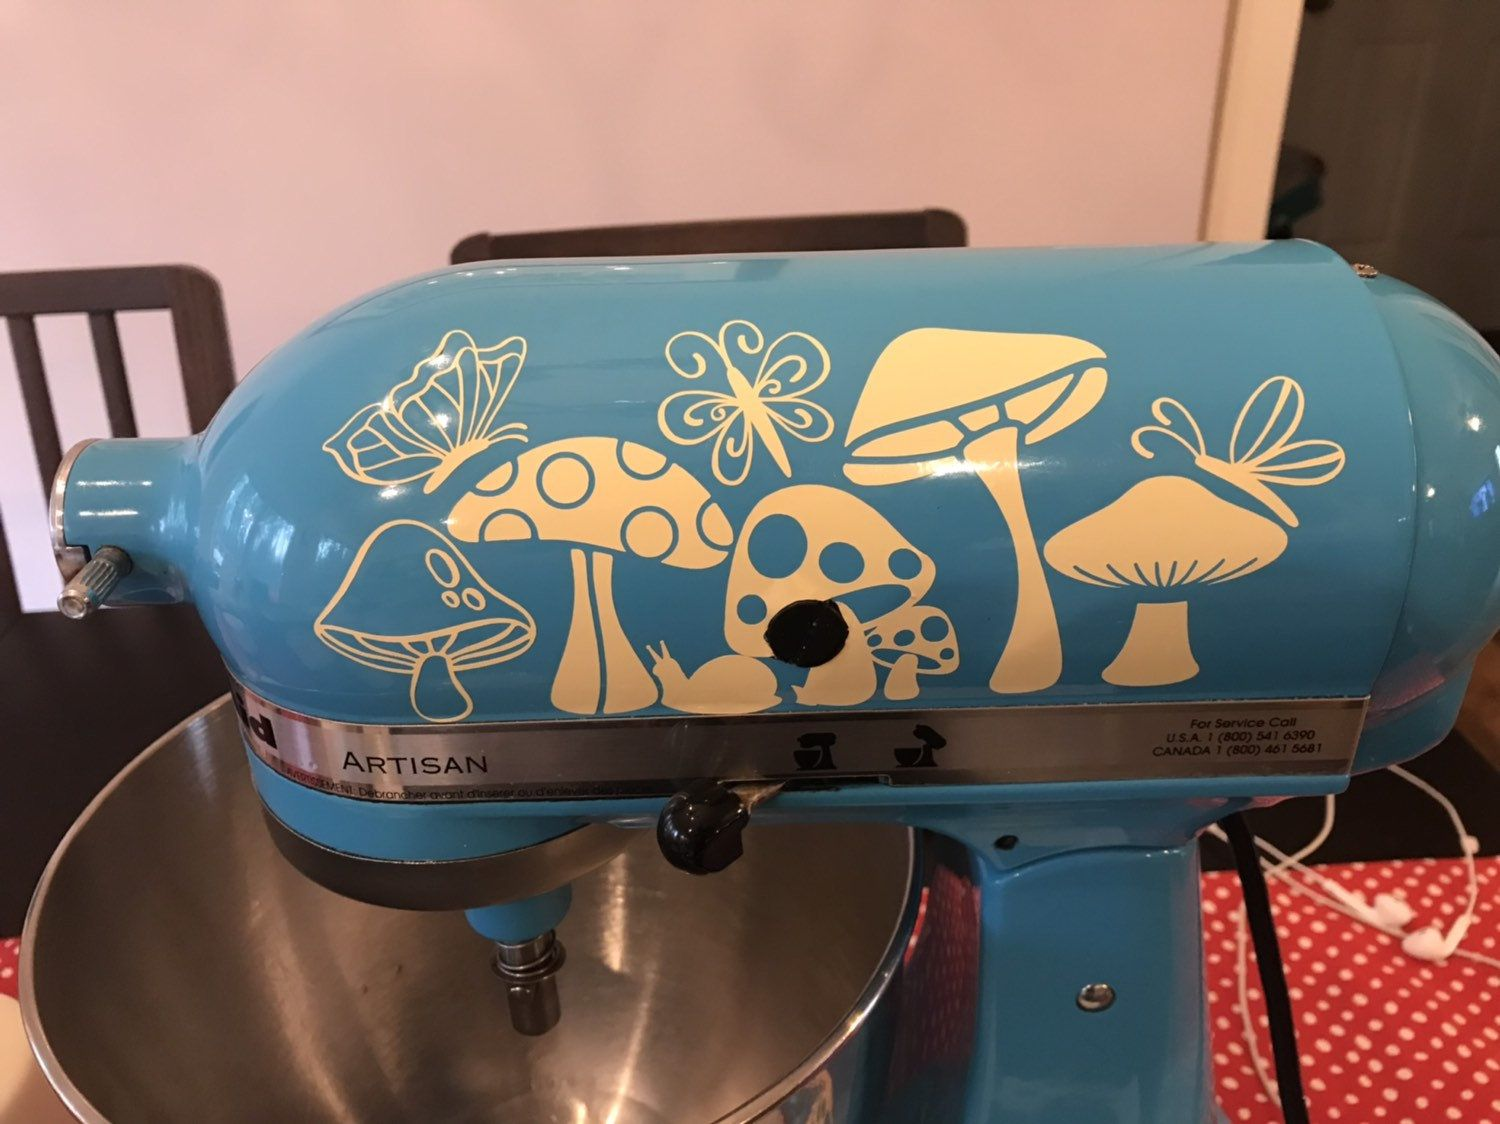 Decal kitchen aid stand mixer merry mushroom 70s 80s vibe